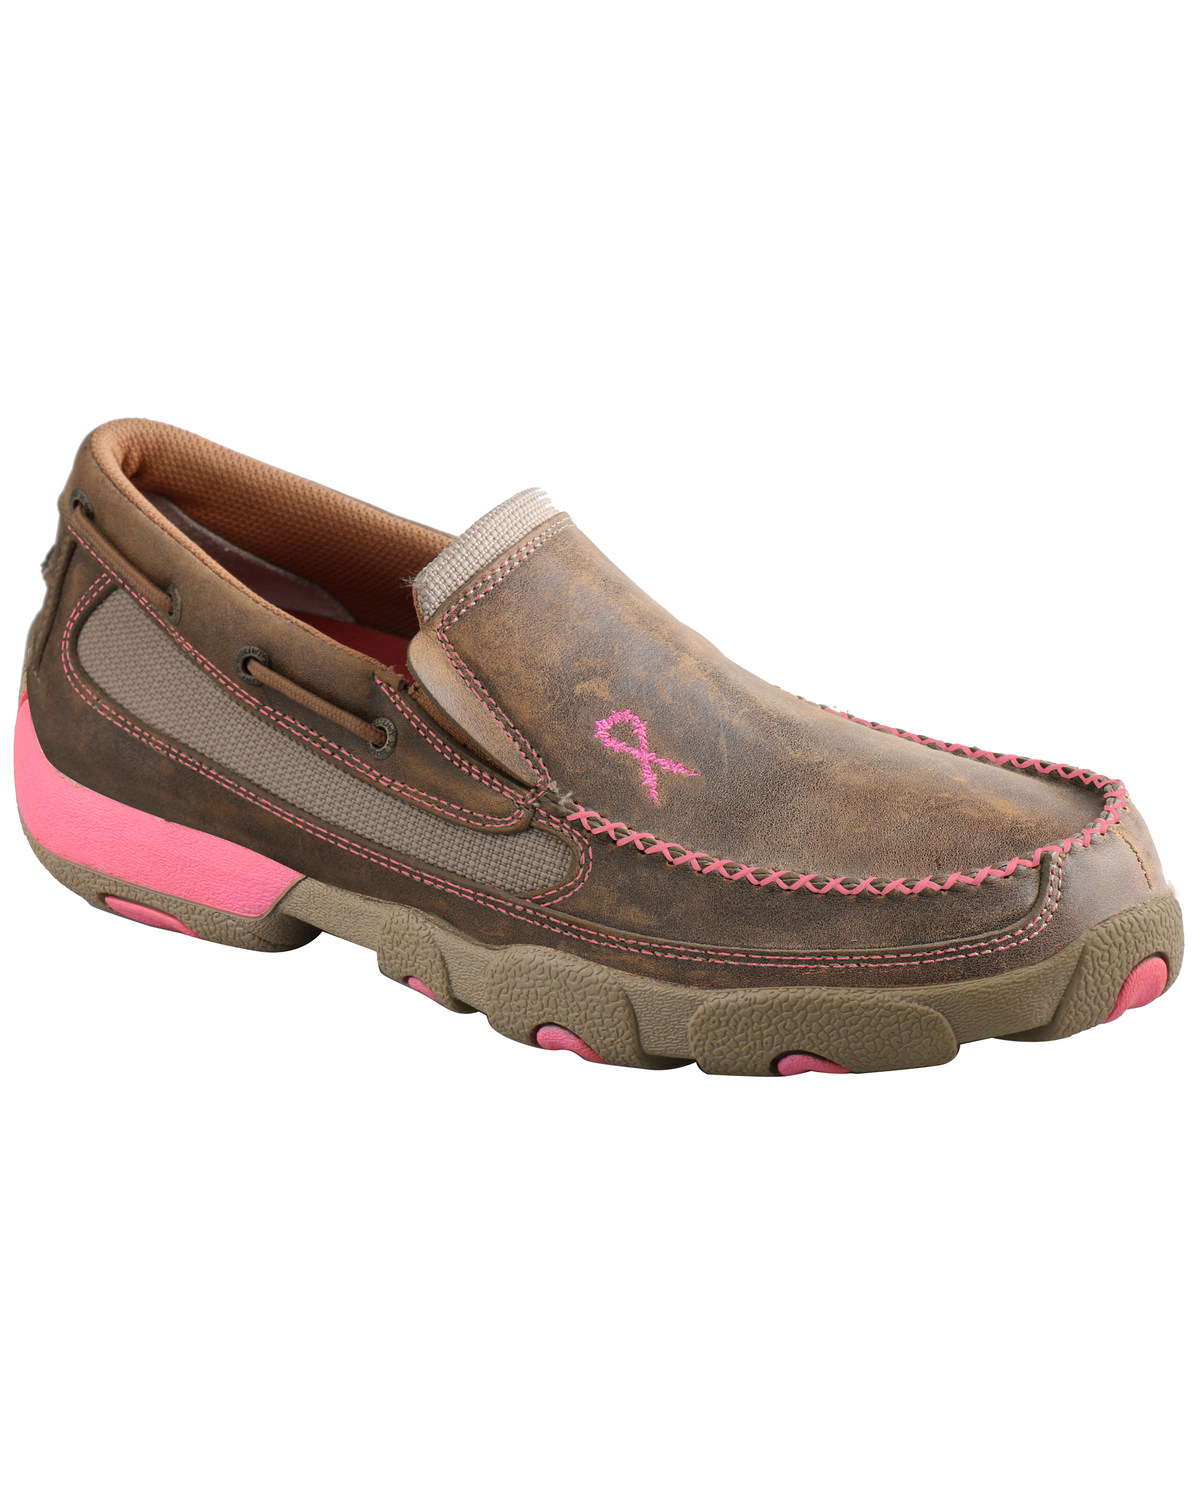 d51a27110f3 Twisted X Women s Slip-On Driving Mocs